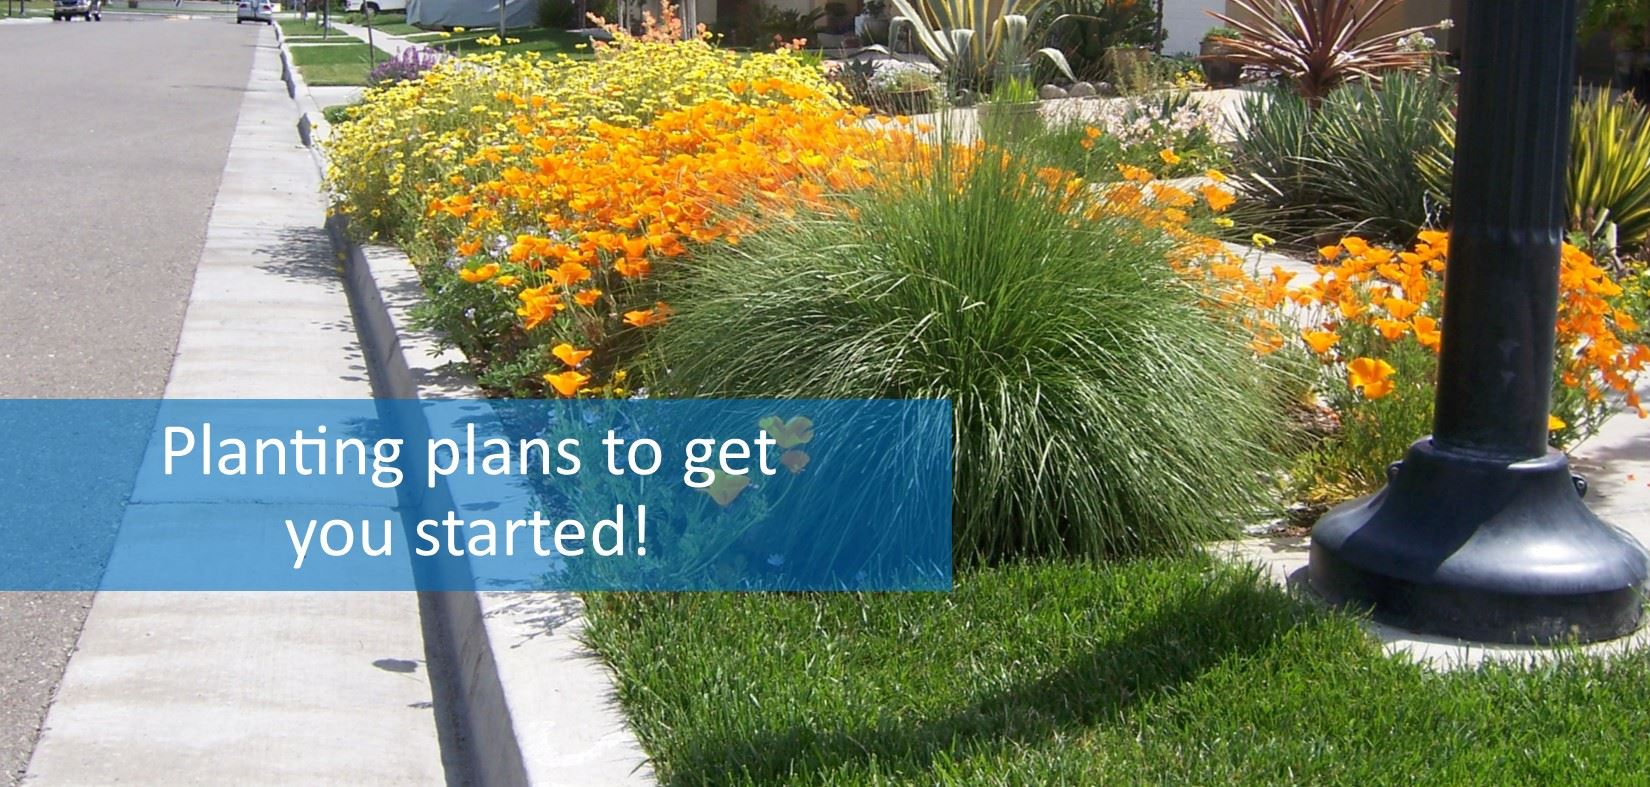 Landscape - Planting plans to get you started!